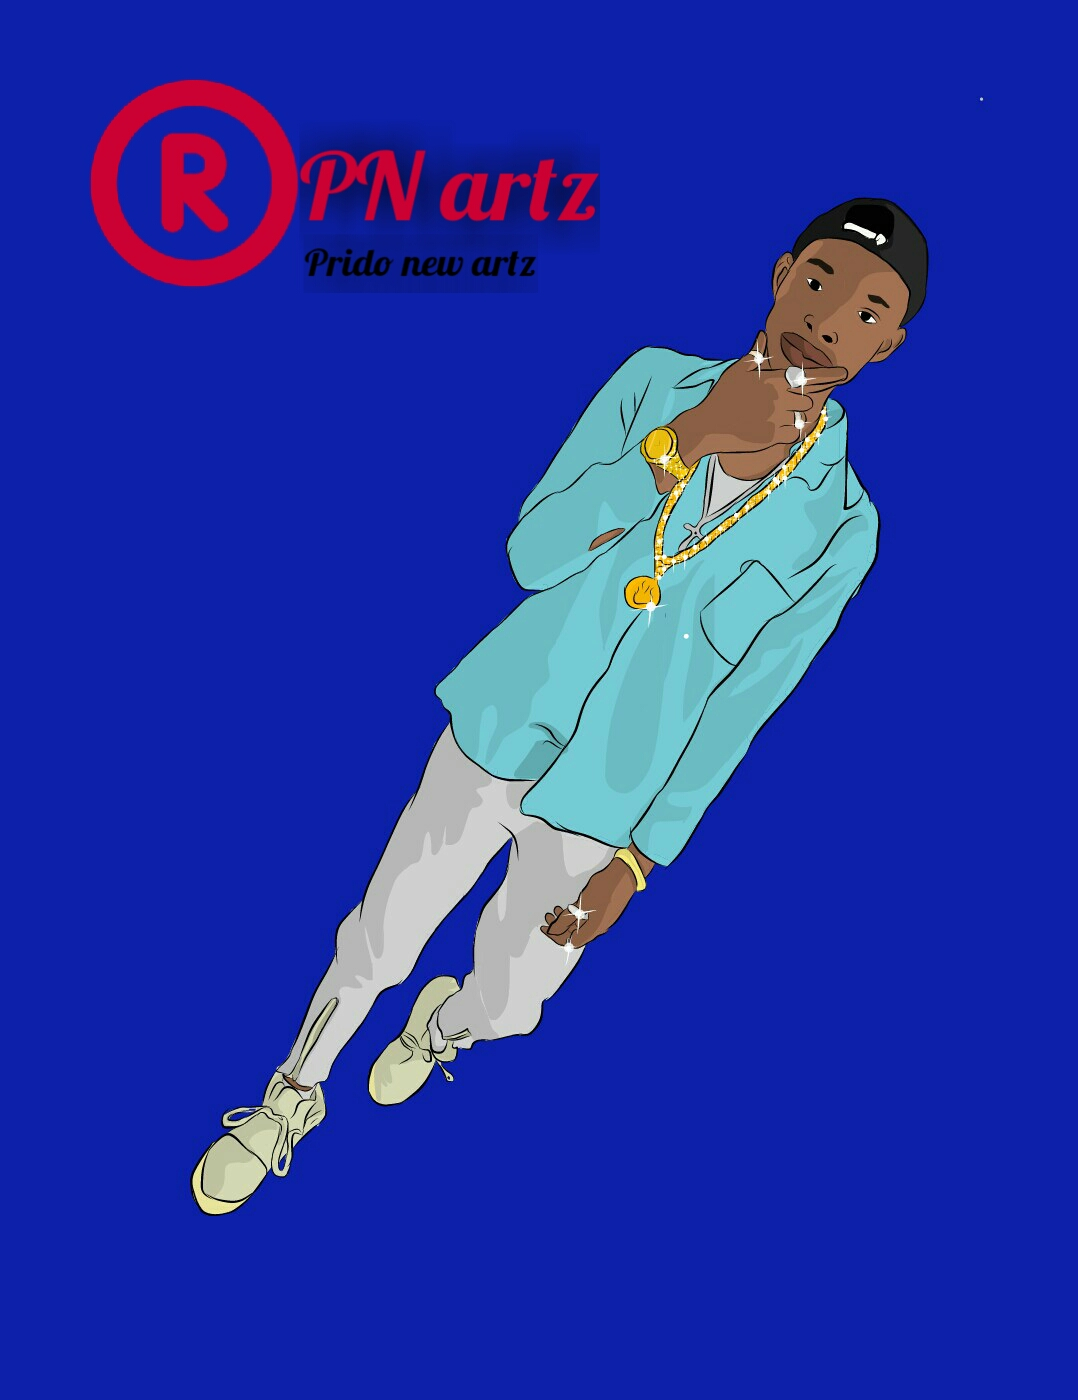 PN artz a service which edit your picture into a cartoon picture with high quality and good graphic.